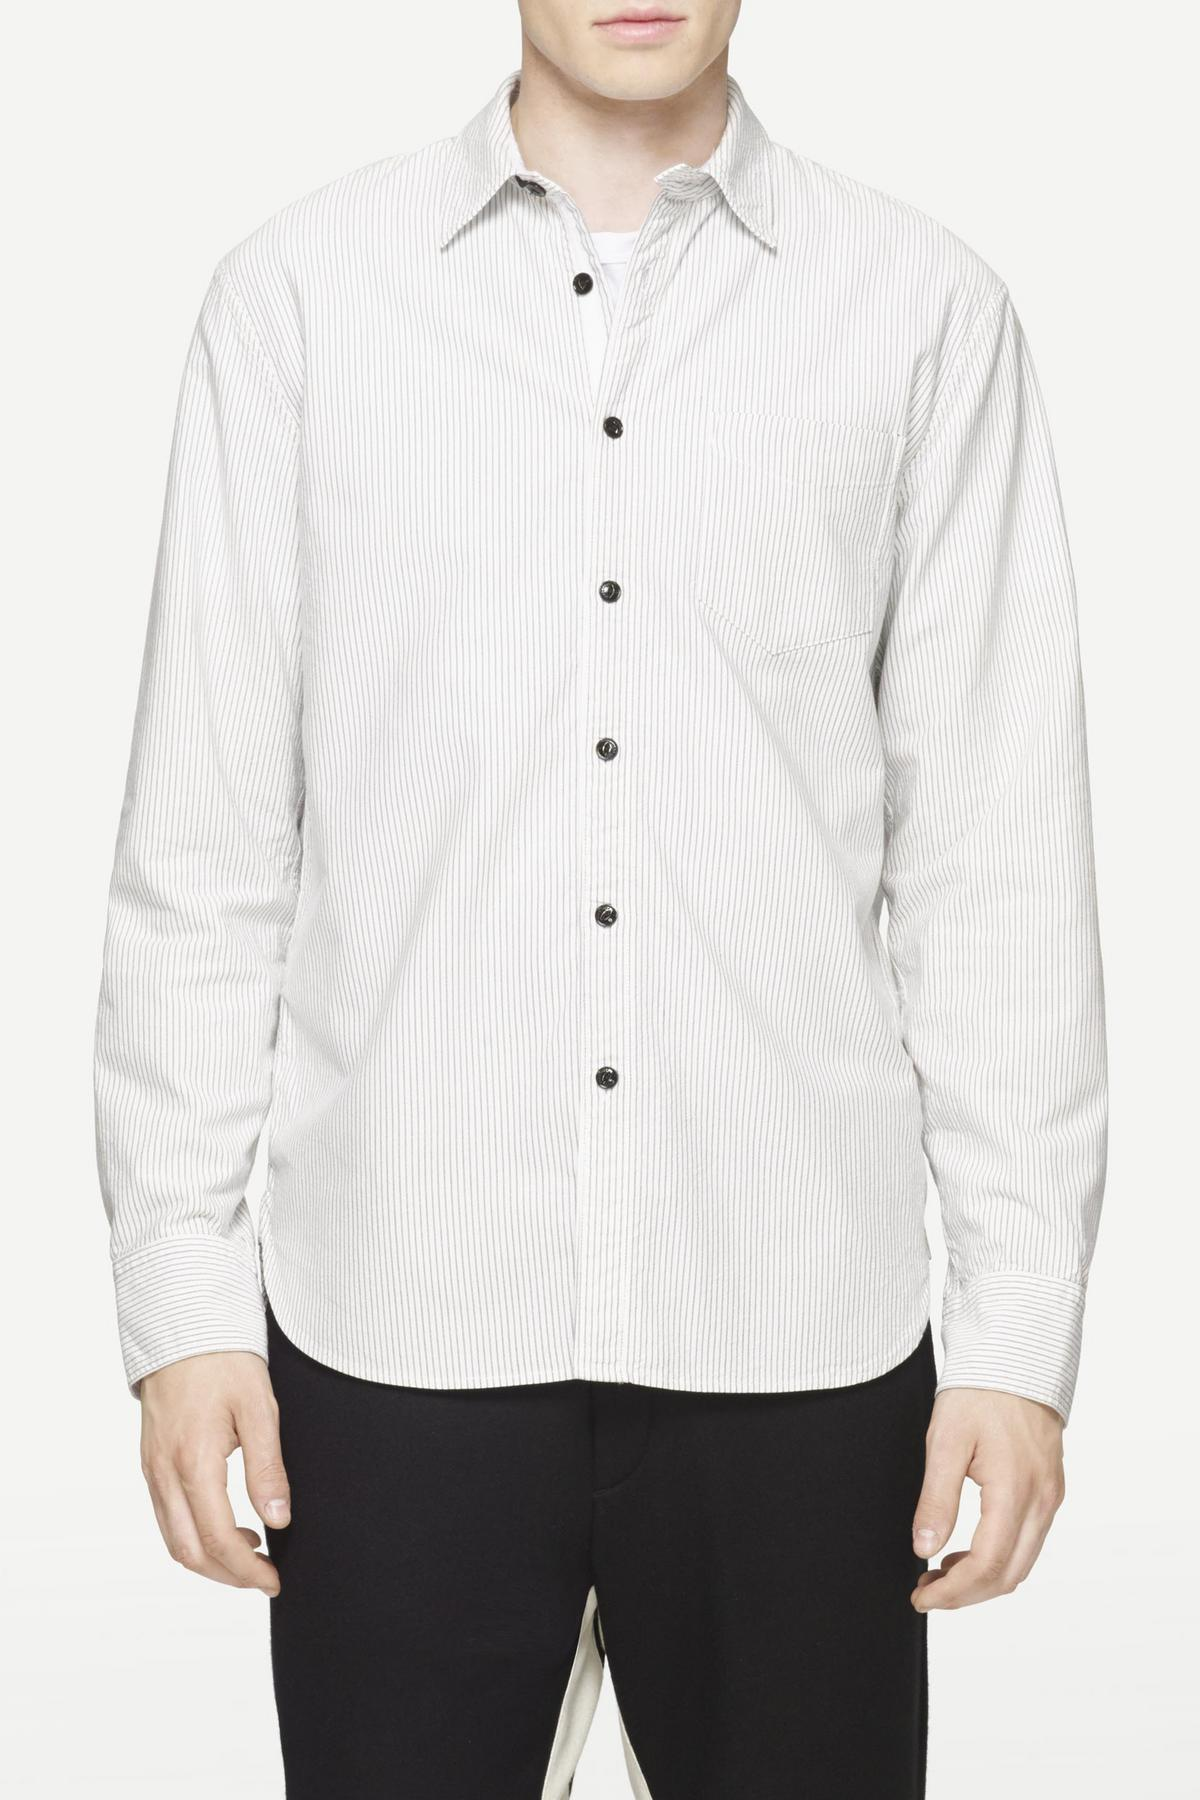 RAG & BONE FIELD SHIRT